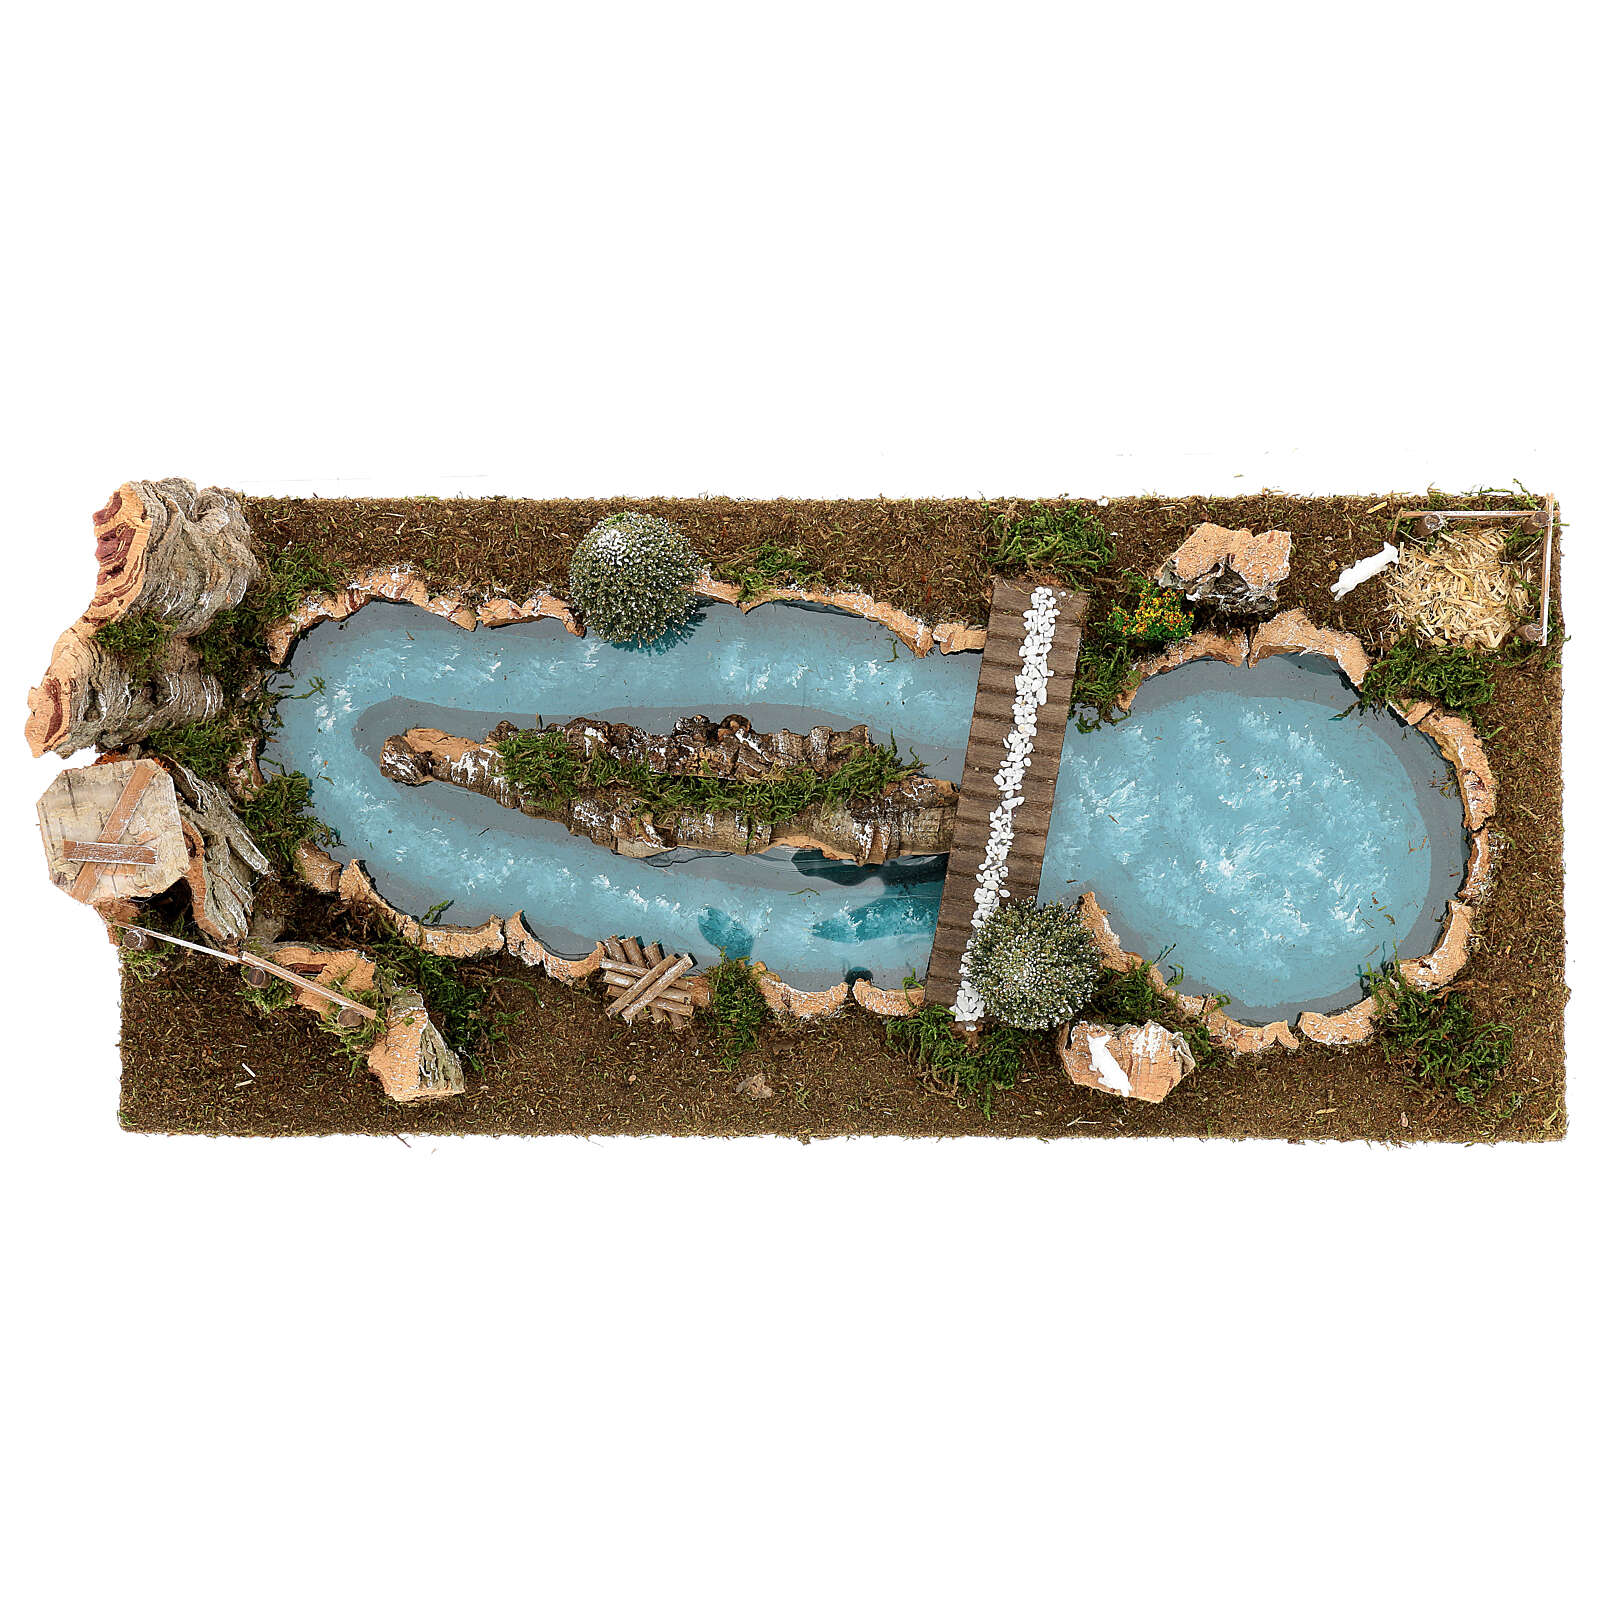 Pond with bridge and sheep, 20x25x55 cm for 6-8 cm Nativity Scenes 4